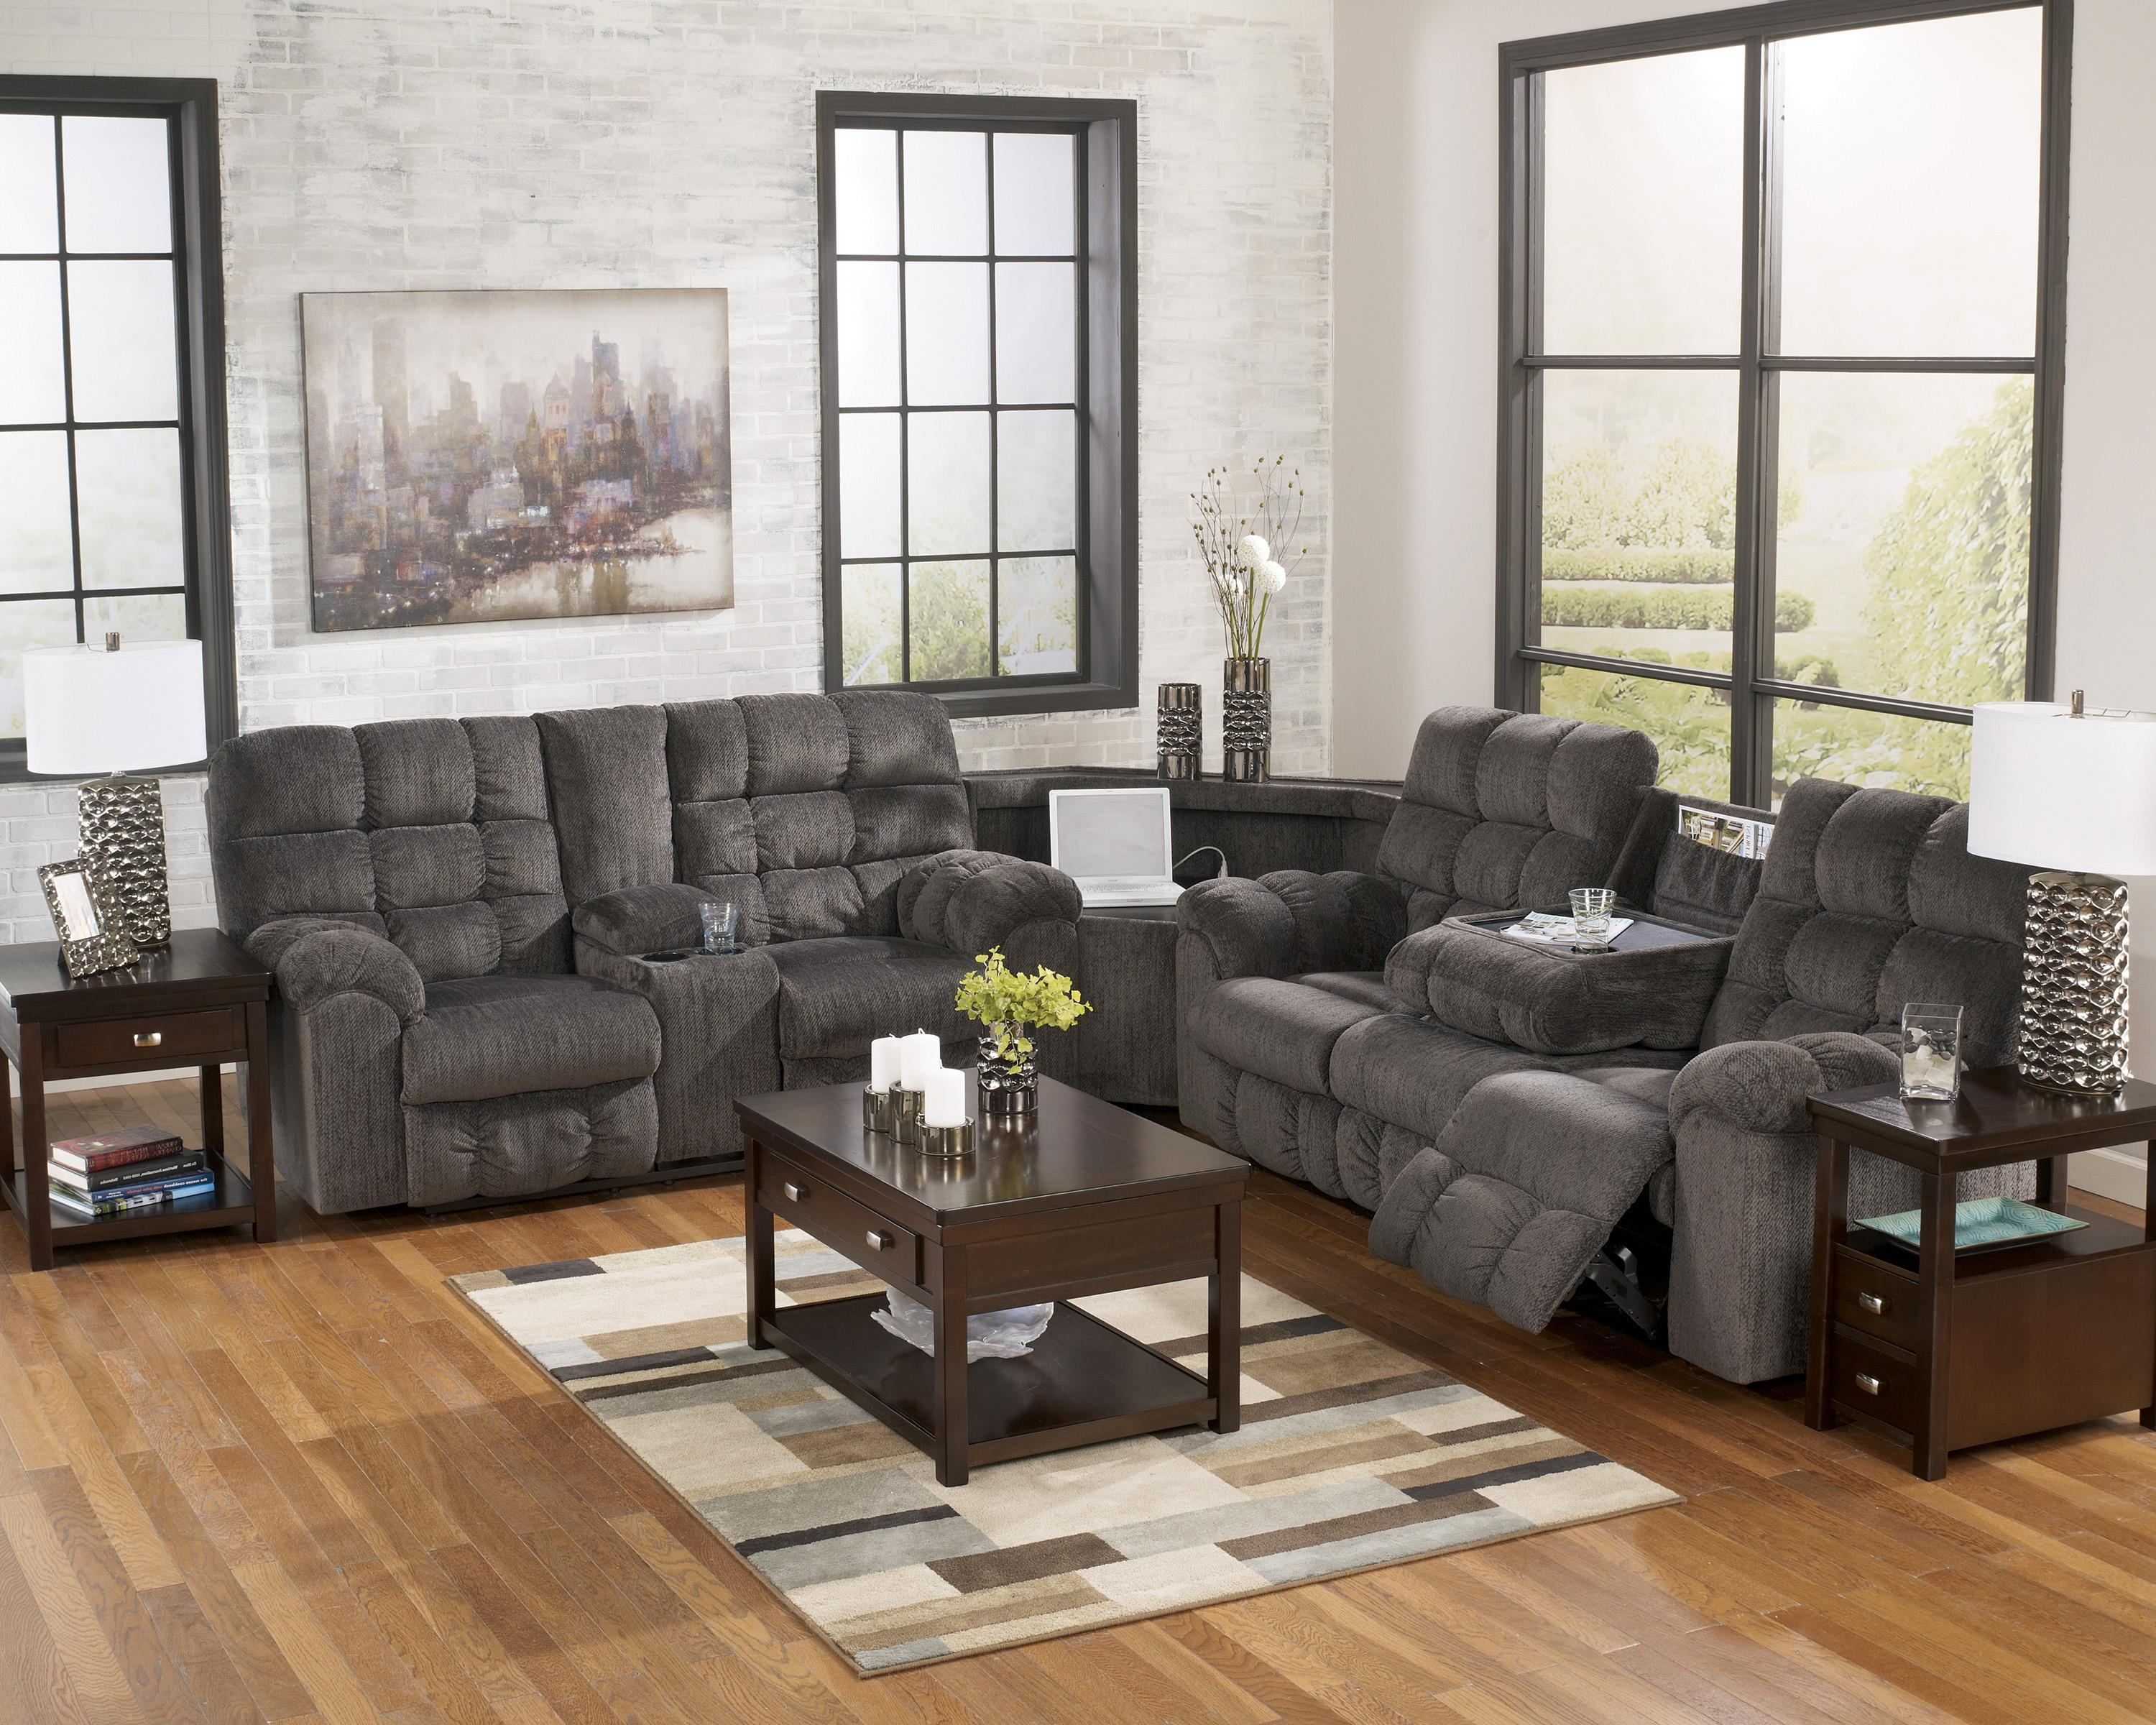 Acieona - Slate Reclining Sectional with Left Side Loveseat by Signature Design by Ashley at Zak's Warehouse Clearance Center